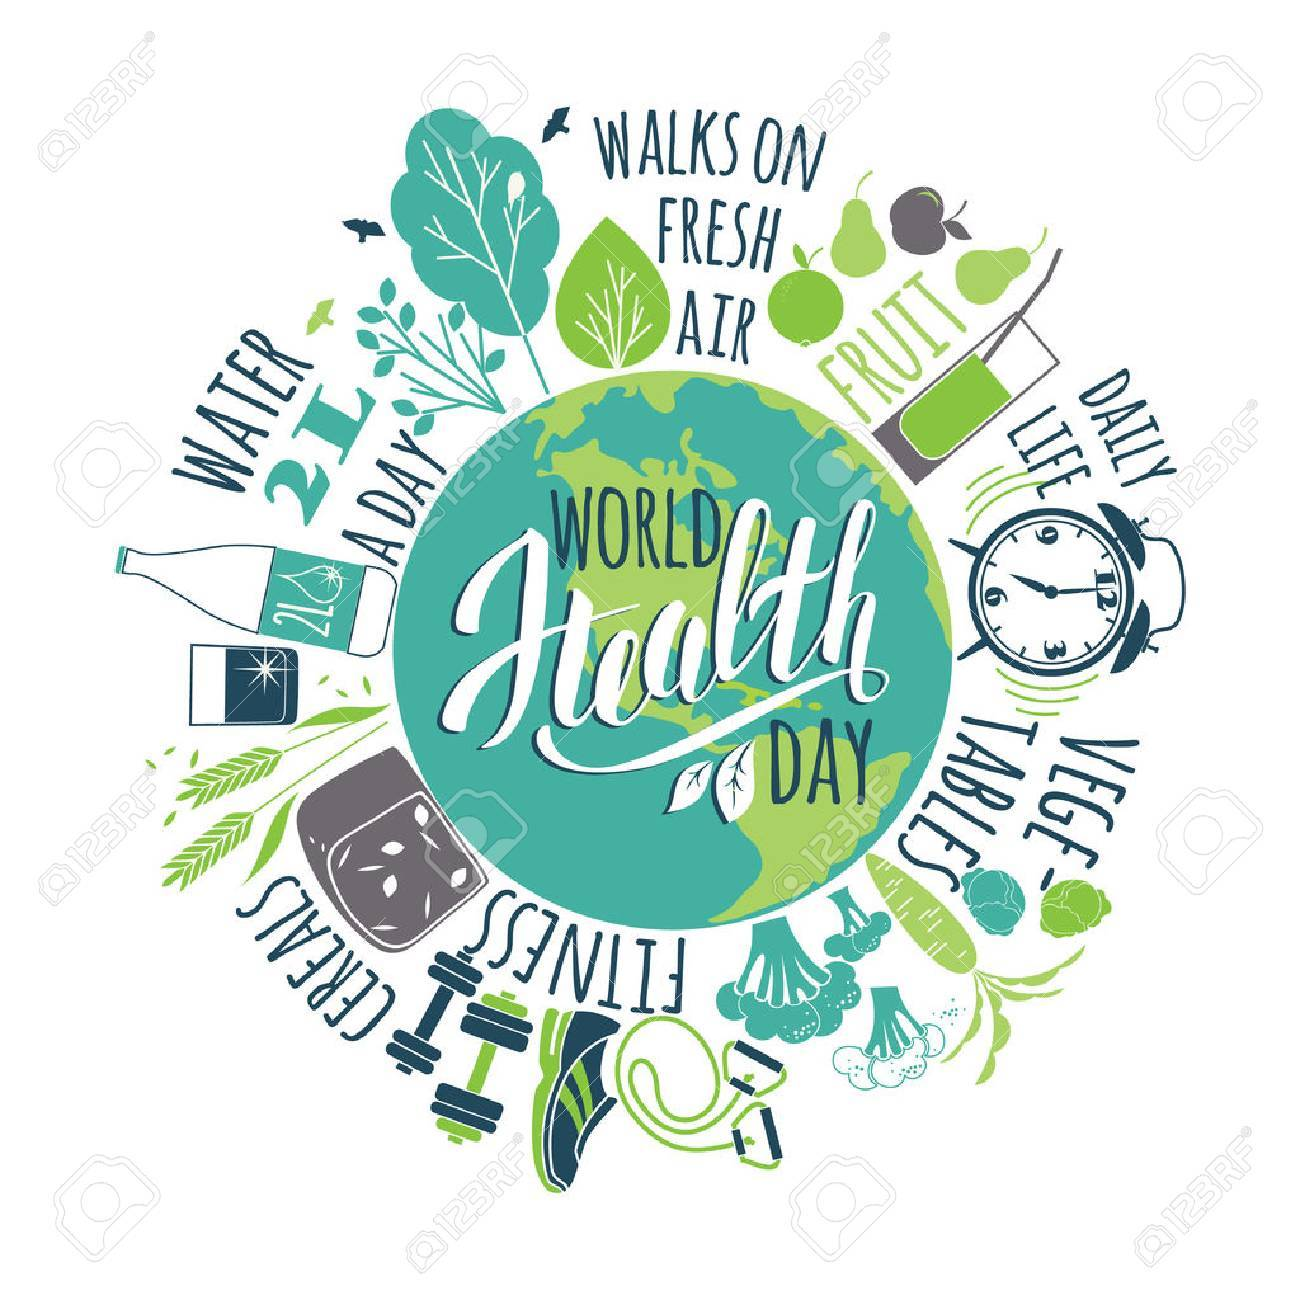 World health day concept with healty lifestyle illustration. - 55707333